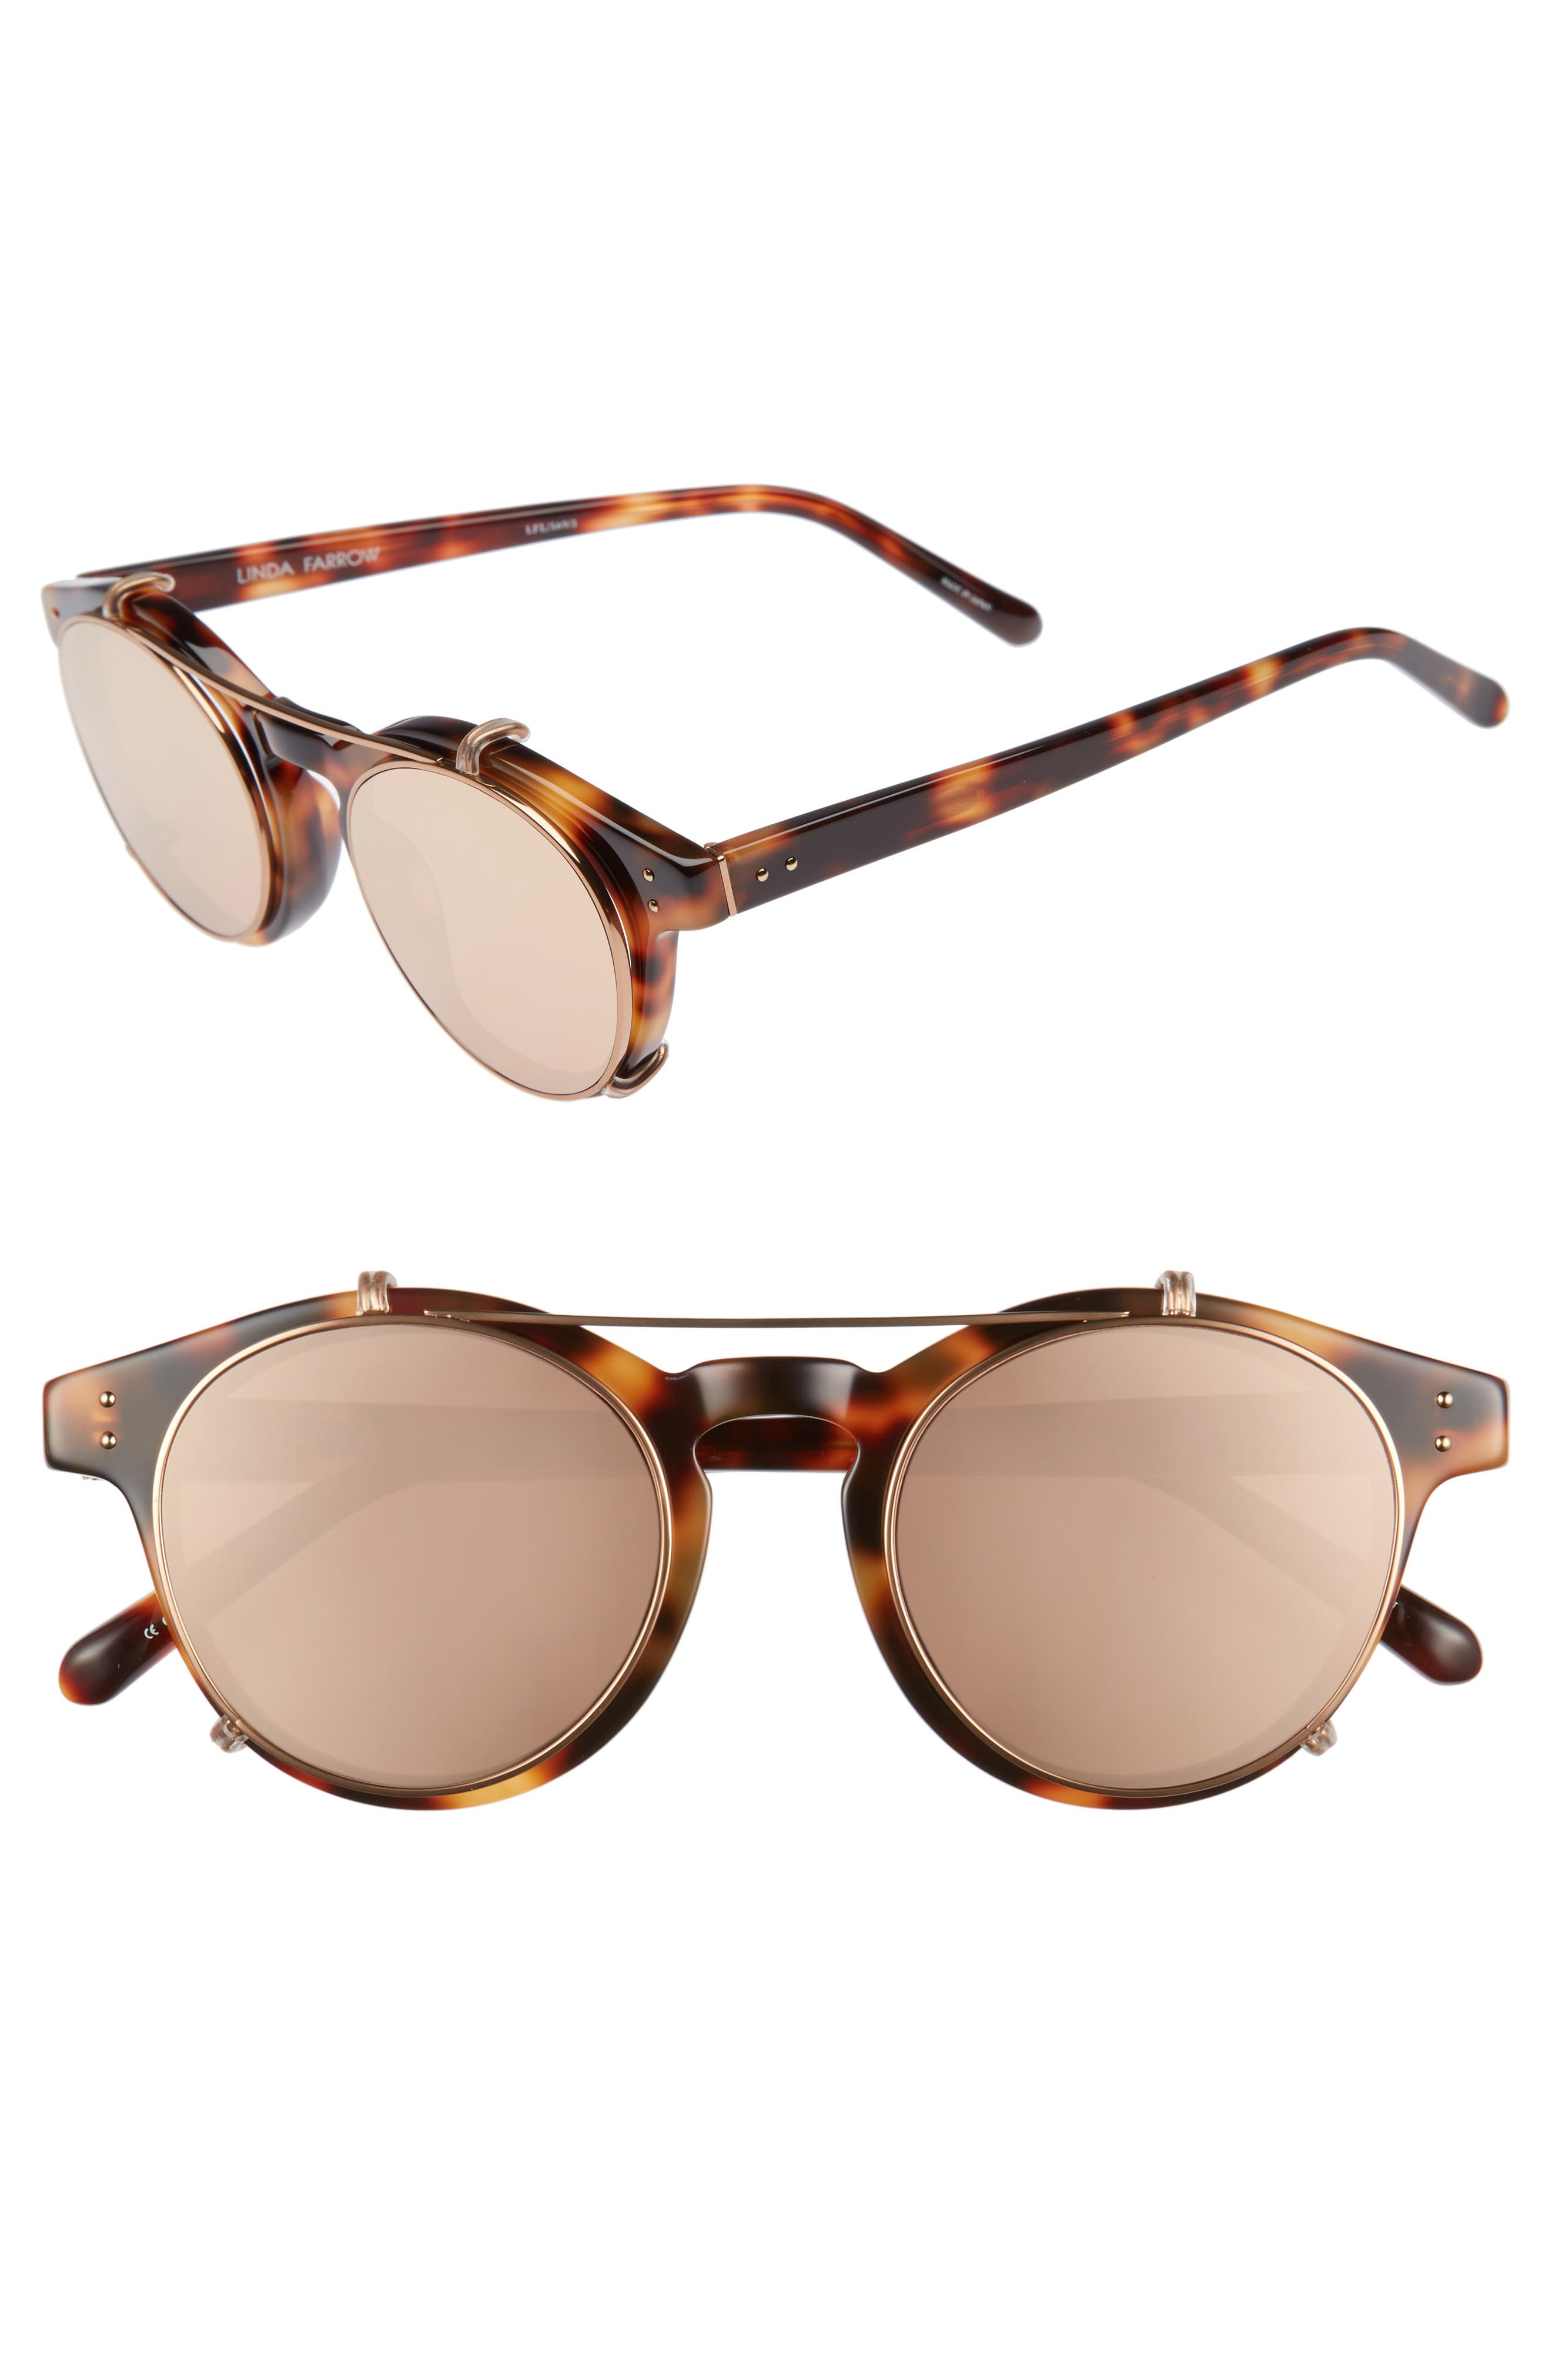 Main Image - Linda Farrow 47mm Optical Glasses with Clip-On 18 Karat Rose Gold Trim Sunglasses